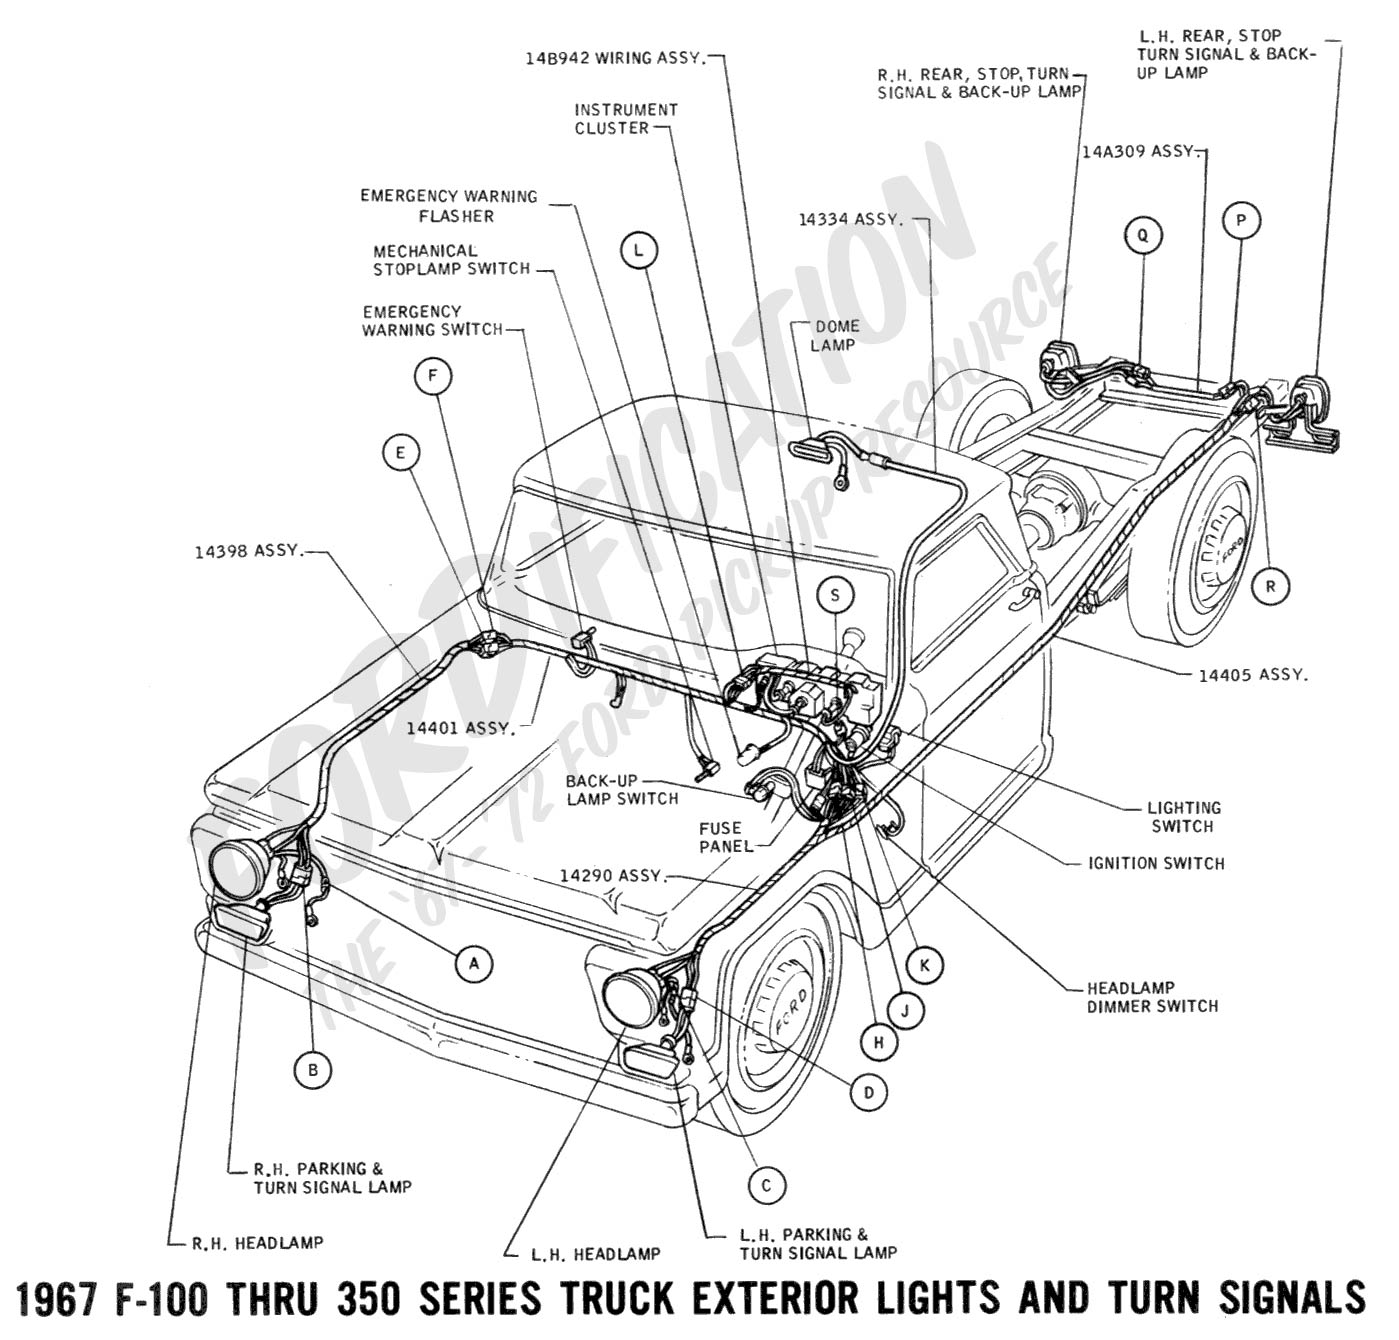 wiring 1967extlights01 ford truck technical drawings and schematics section h wiring 2008 ford ranger wiring diagram at reclaimingppi.co